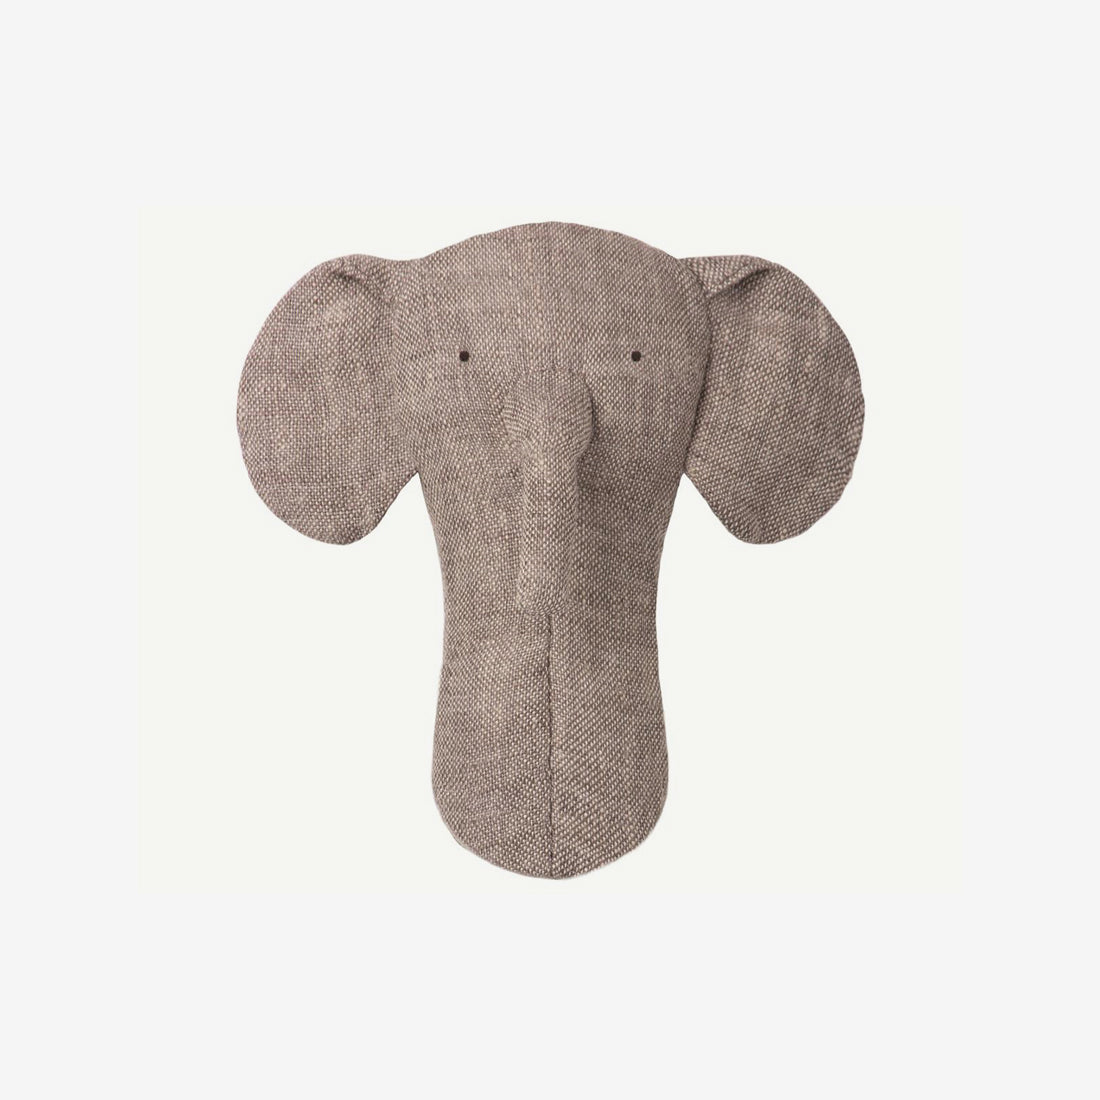 Noah's Friends - Elephant Crinkle Toy